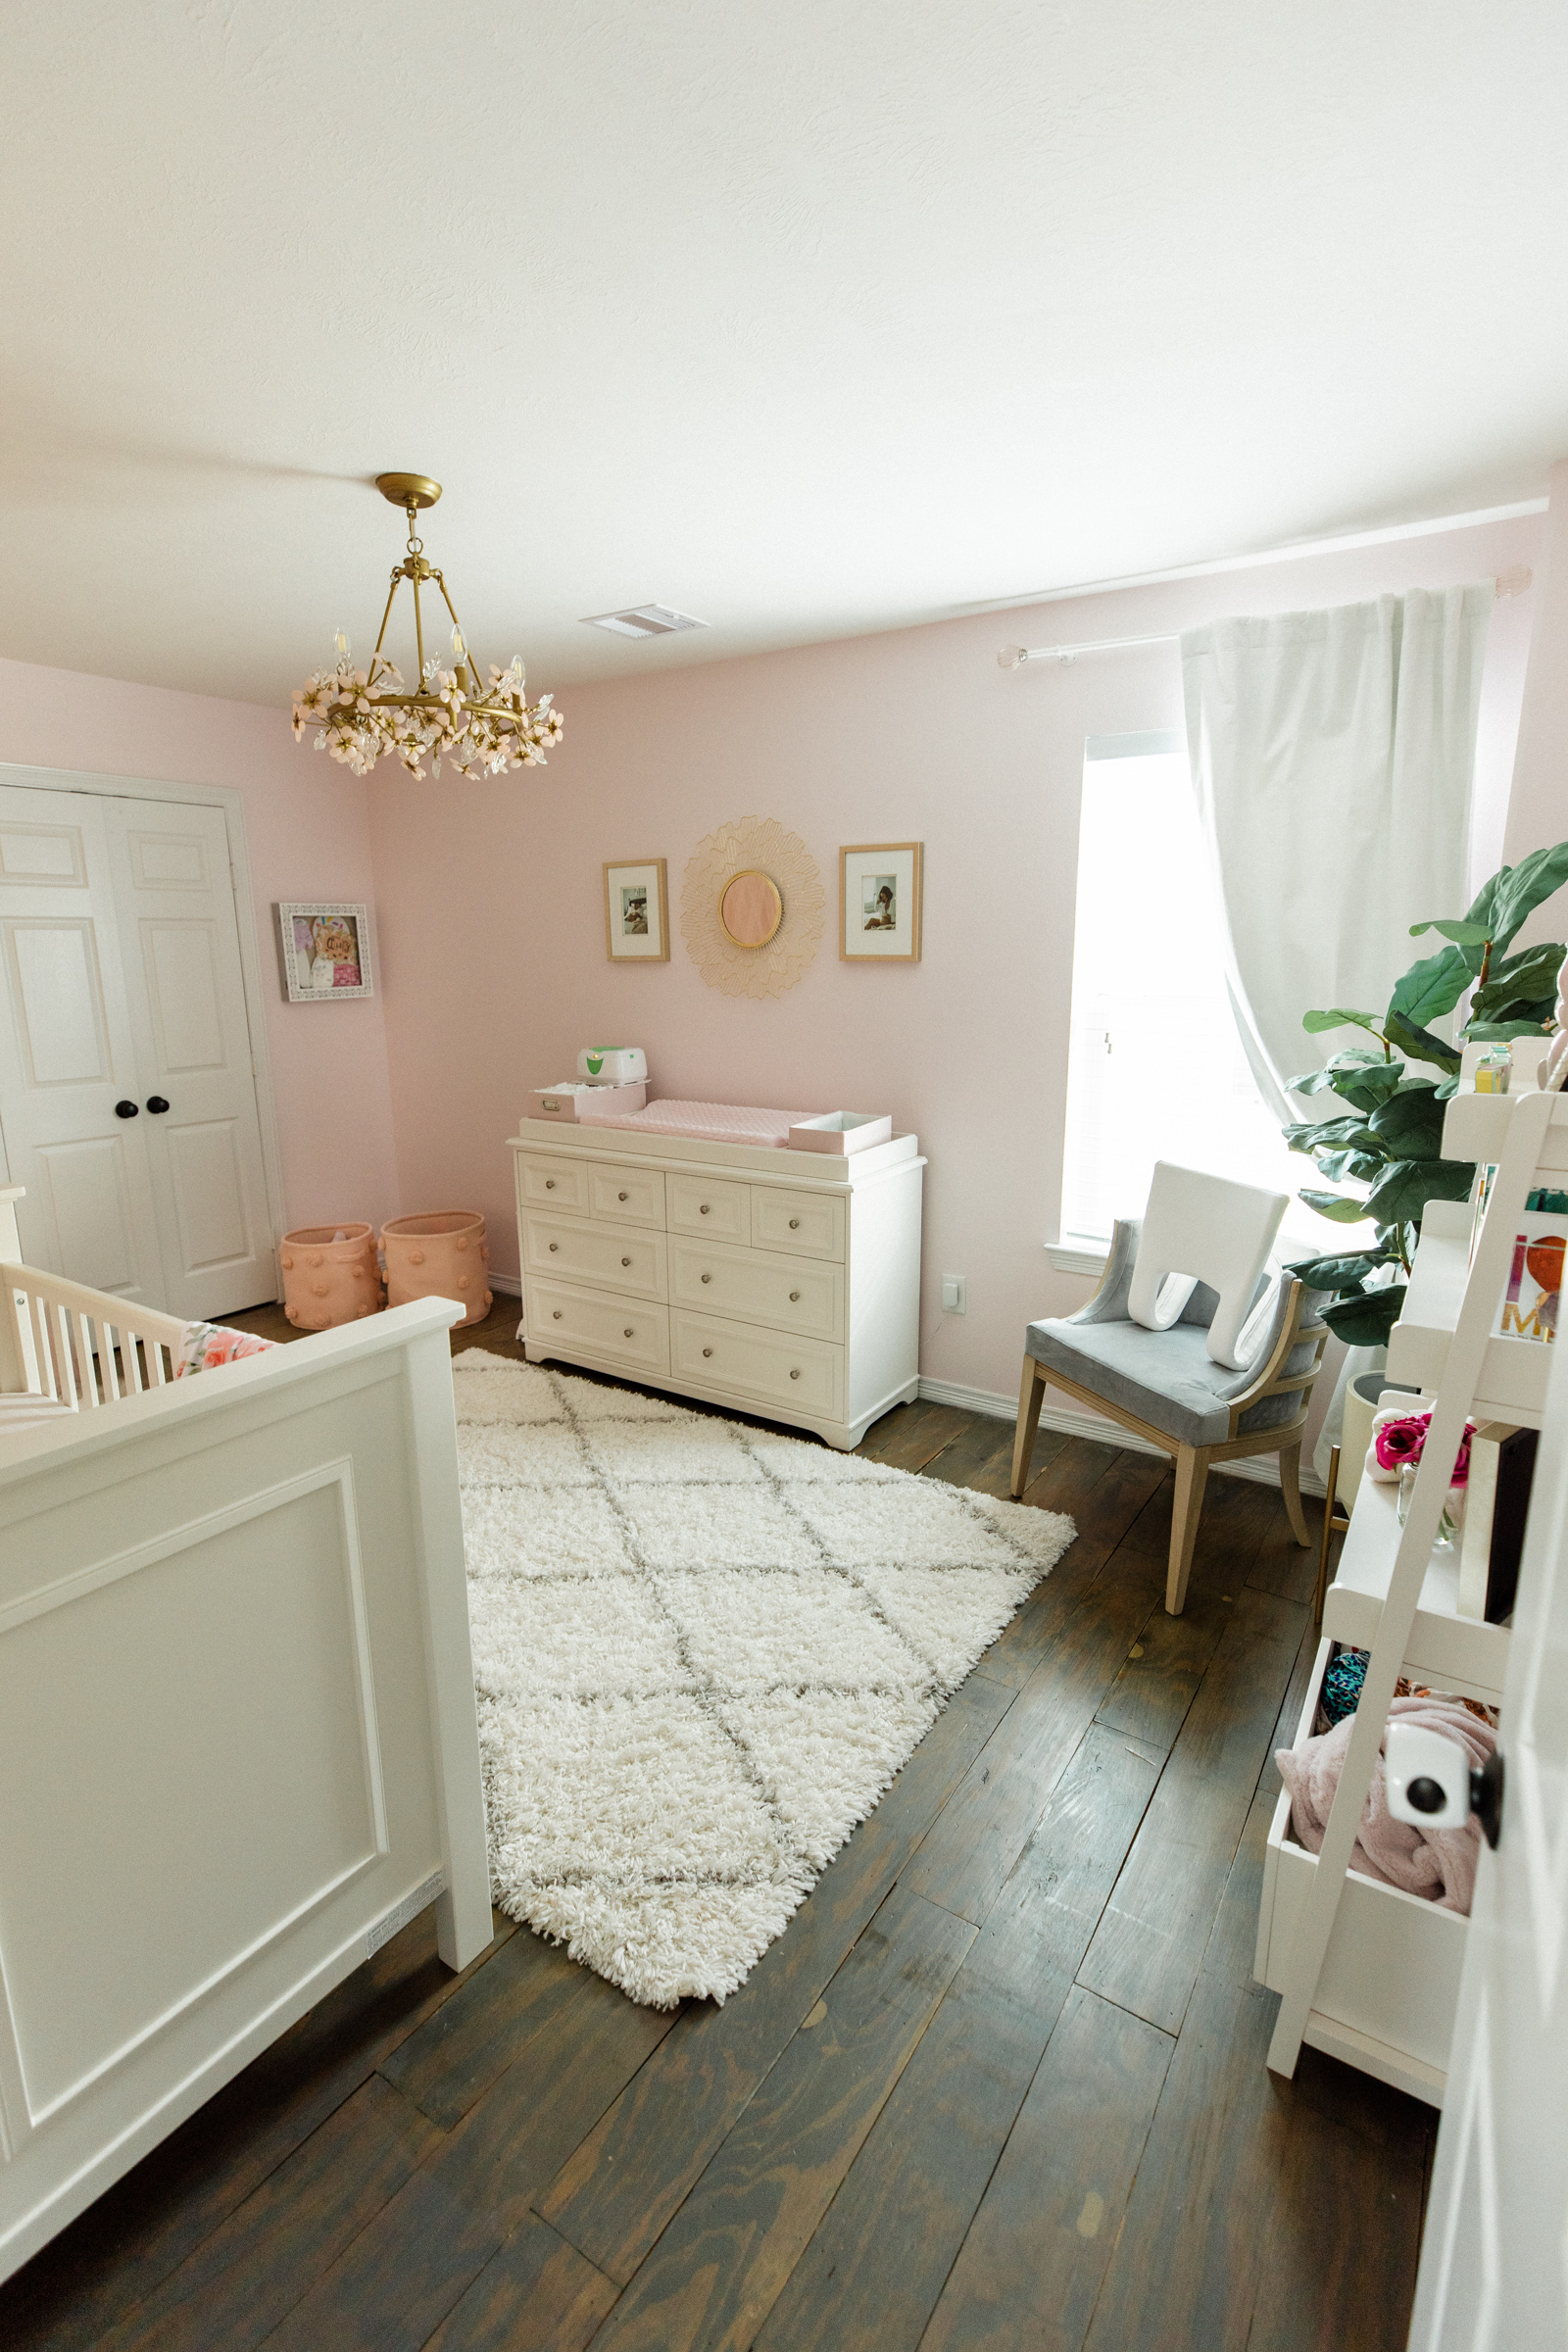 Looking for inspiration on baby nursery? Houston lifestyle blogger Uptown with Elly Brown shares her Baby Girl Nursery Decor.